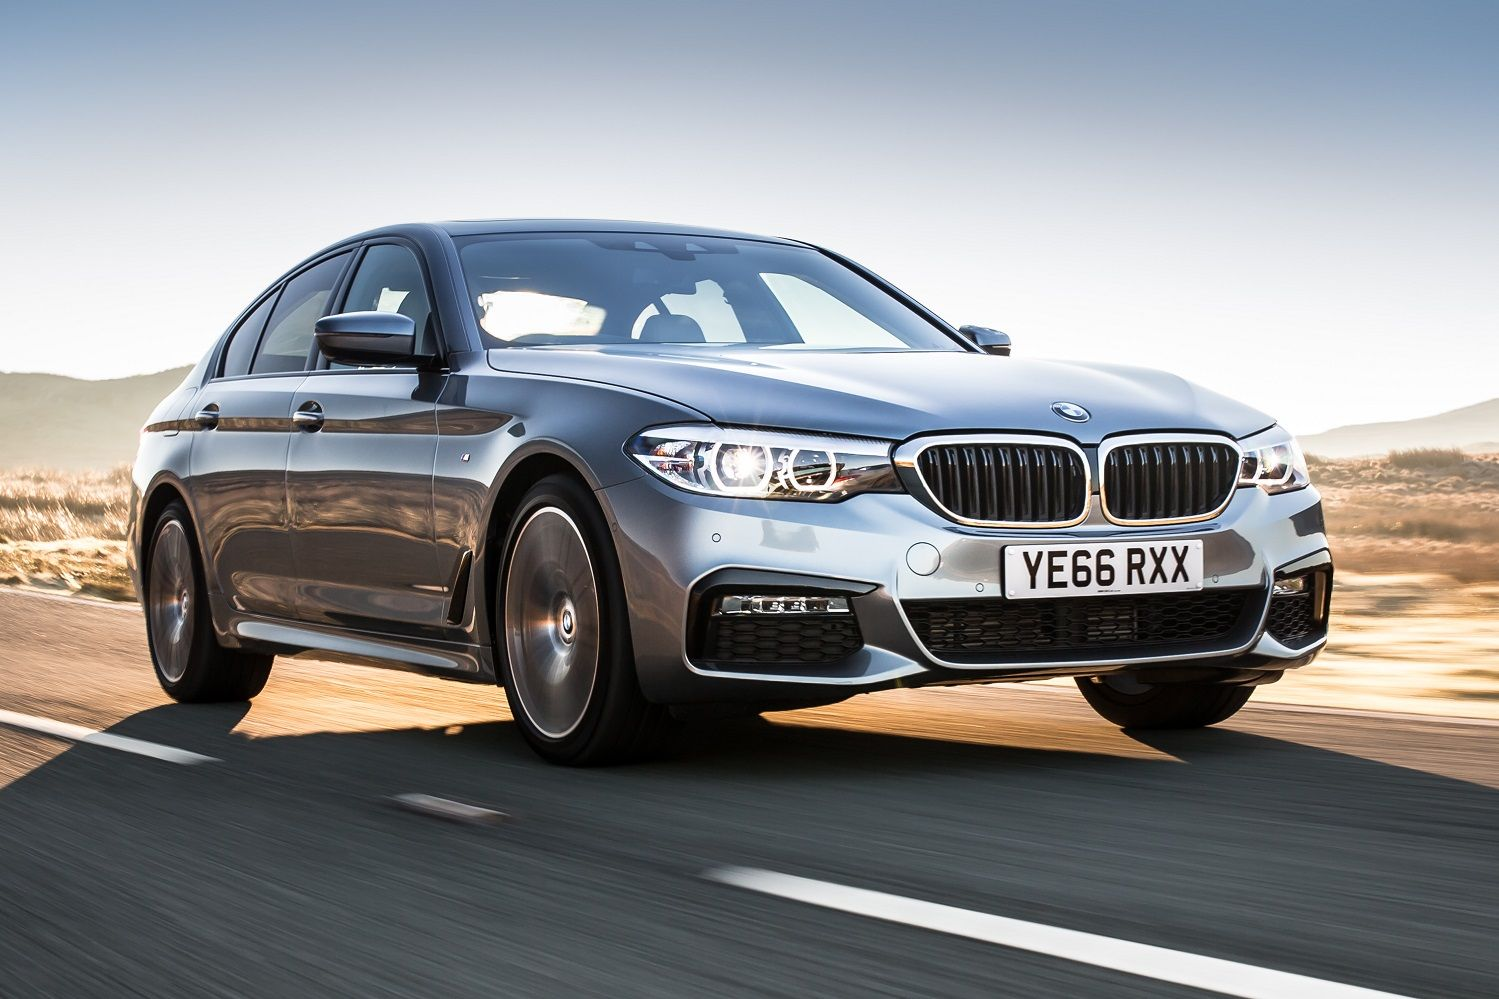 The Best Hybrid Cars & Executive Diesel Models in the UK